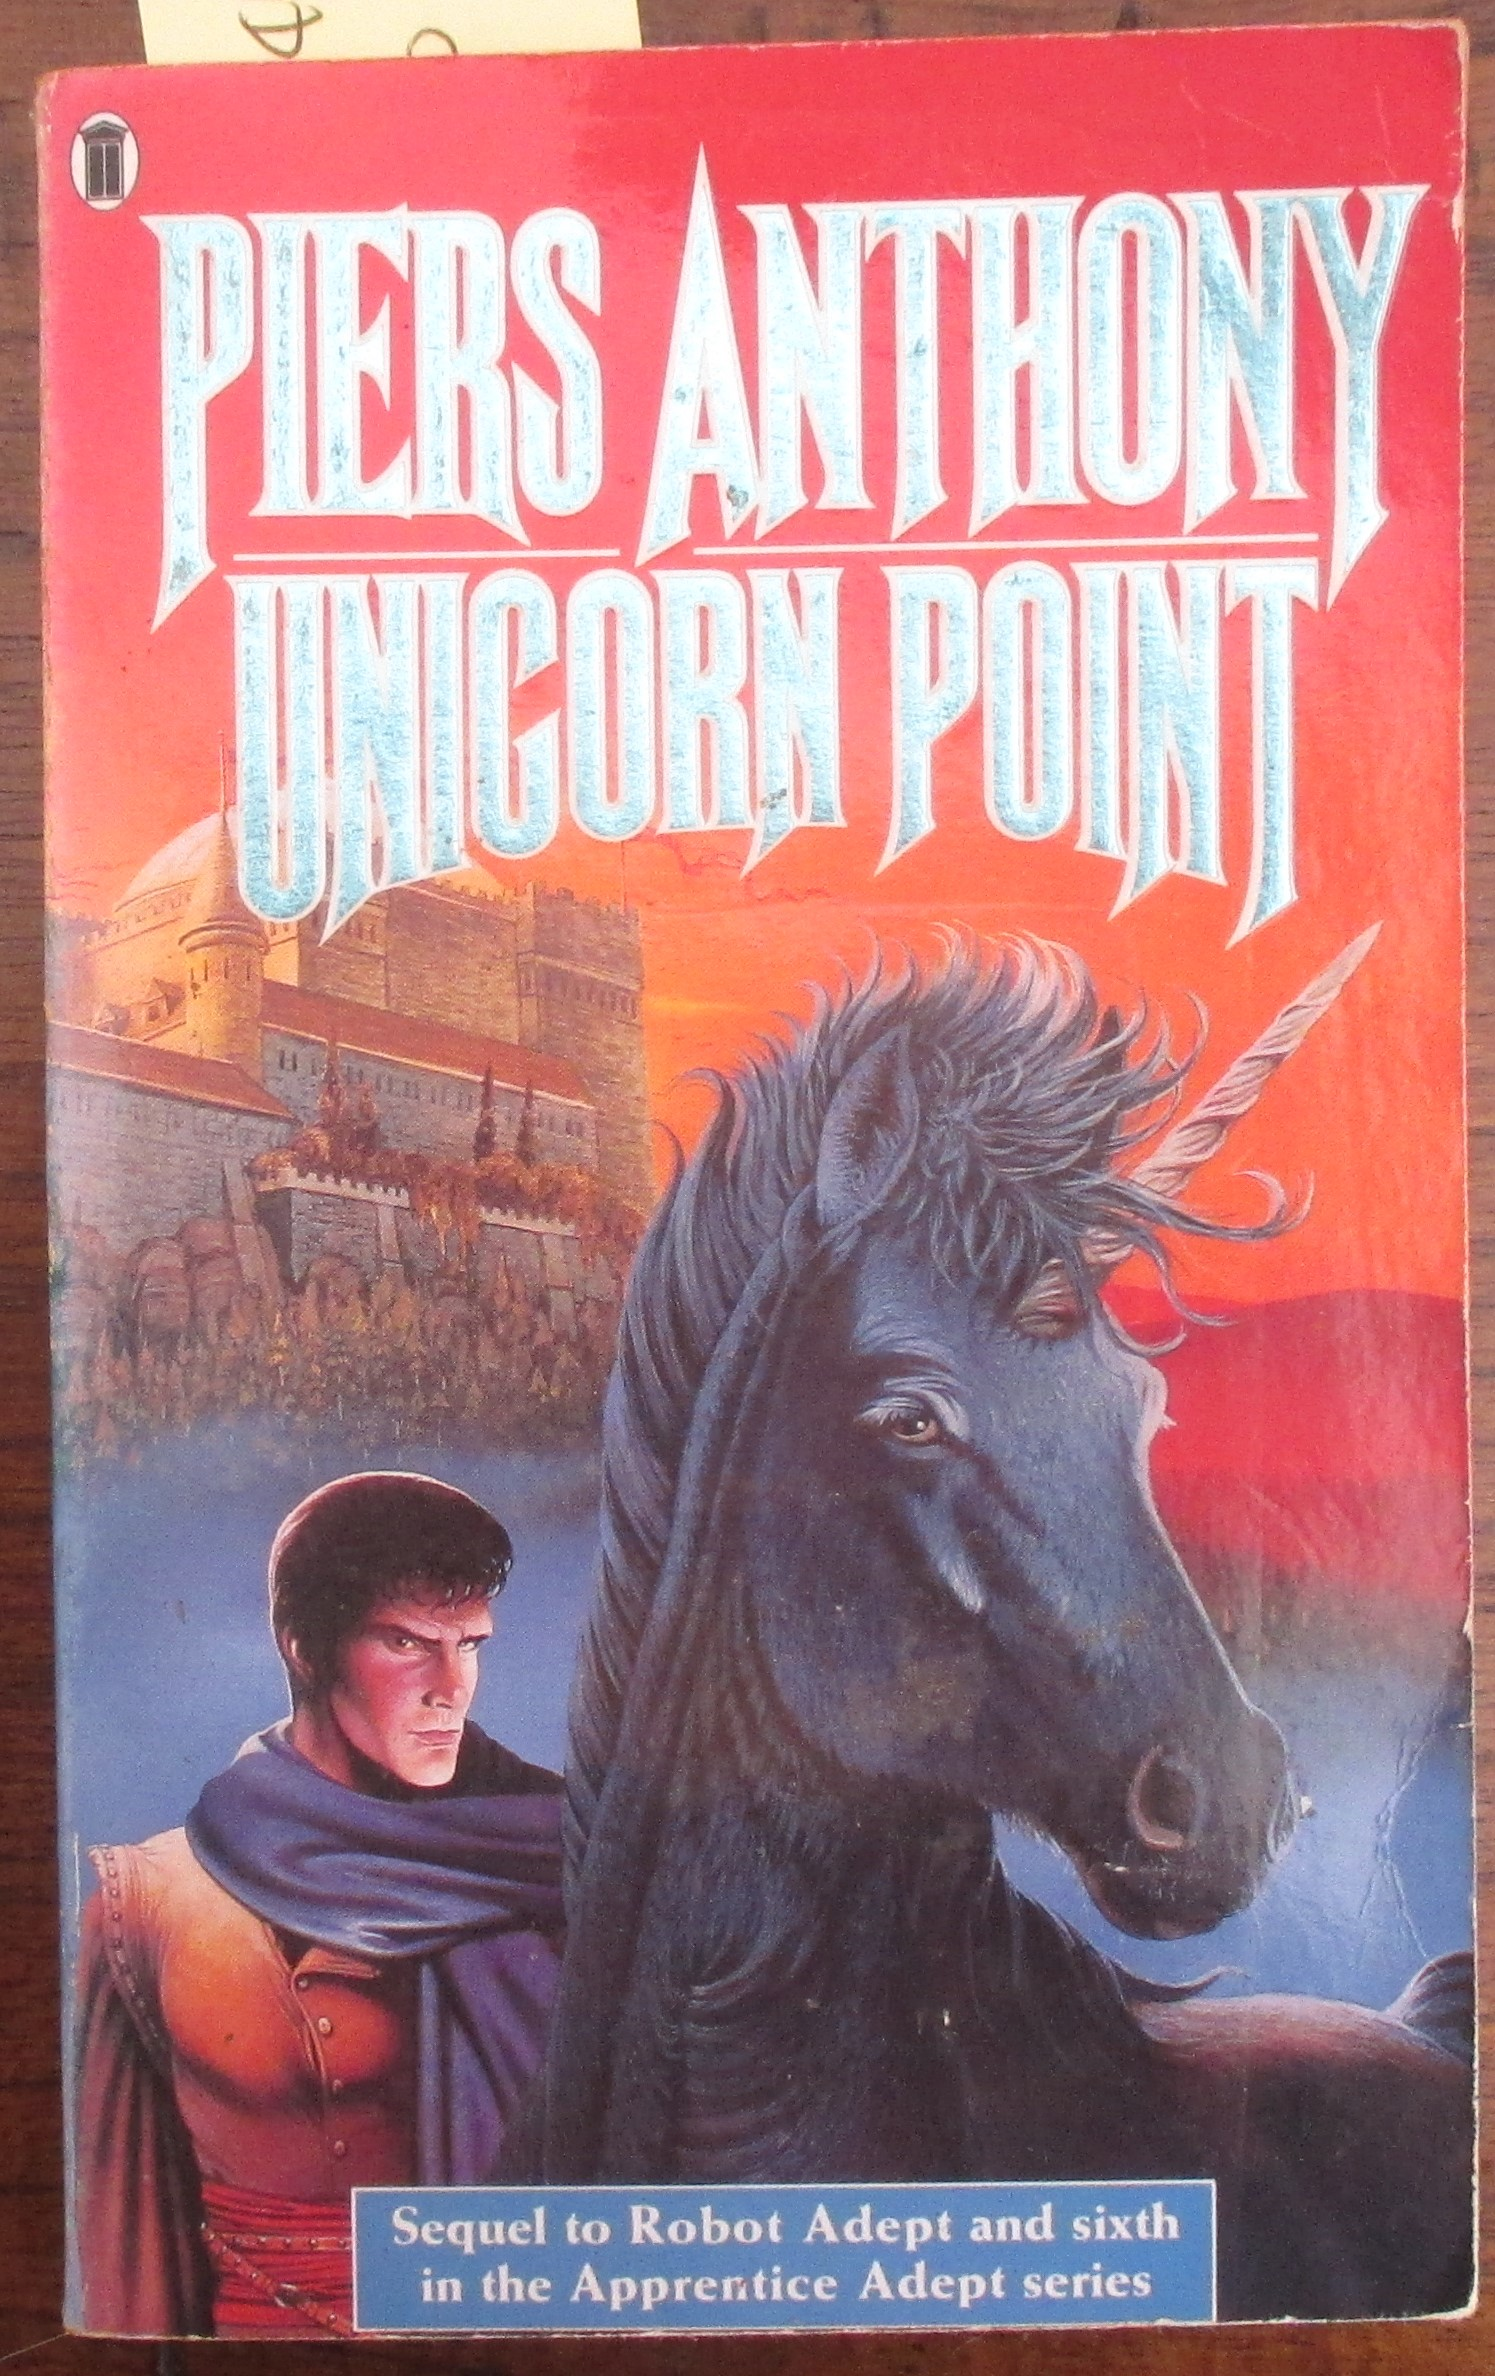 Image for Unicorn Point: Apprentice Adept Series